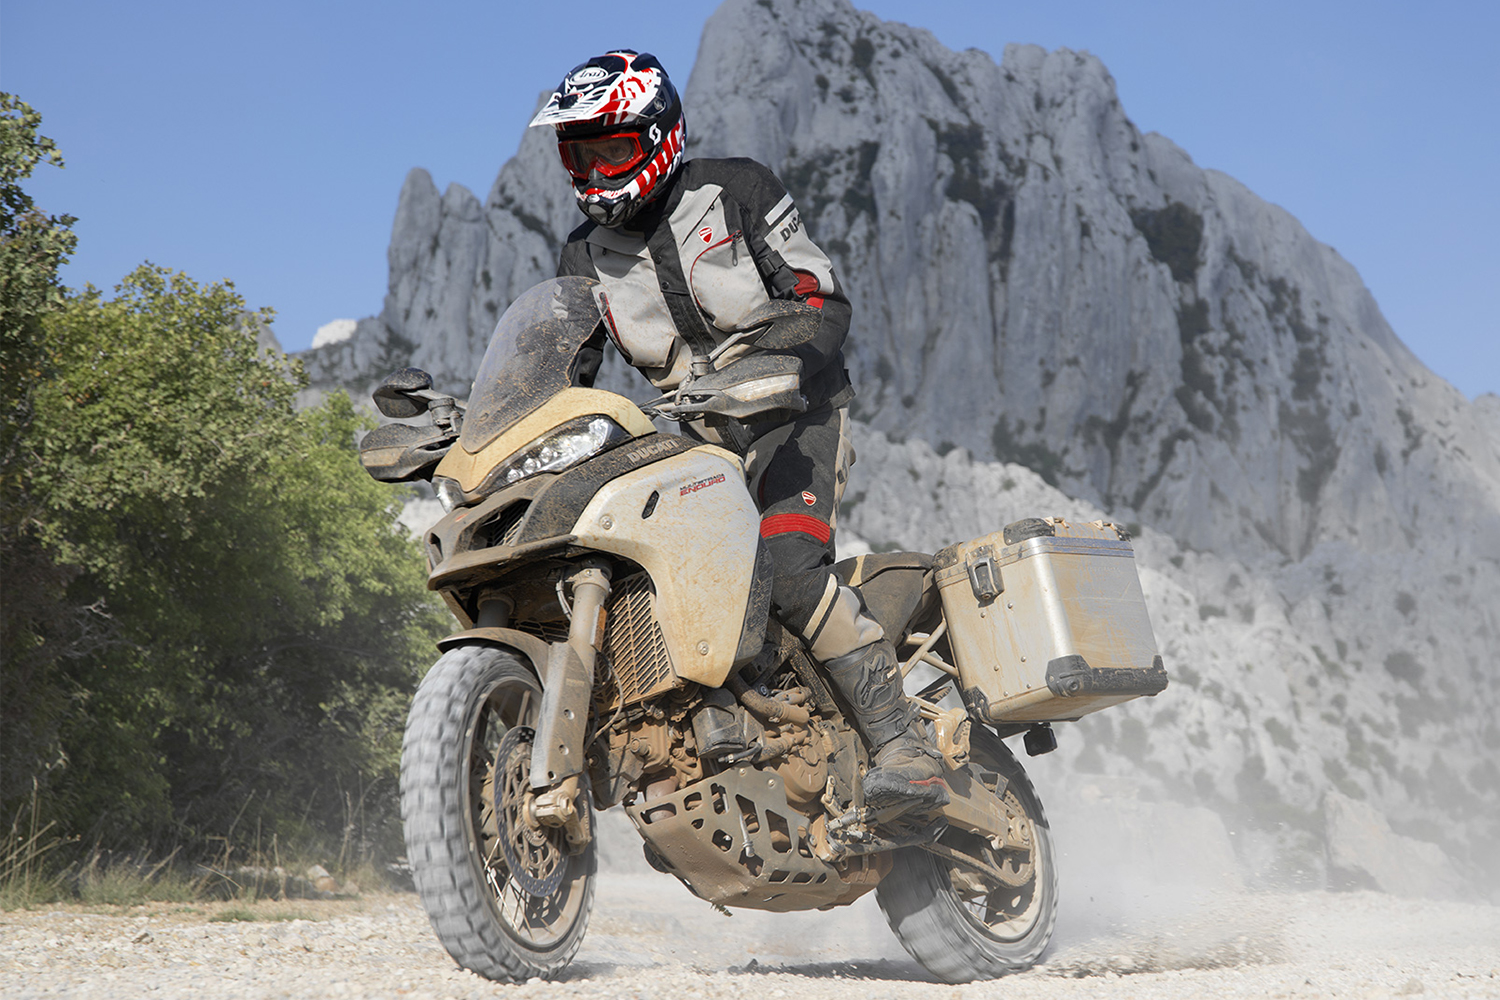 Ducati motorcycle off-roading